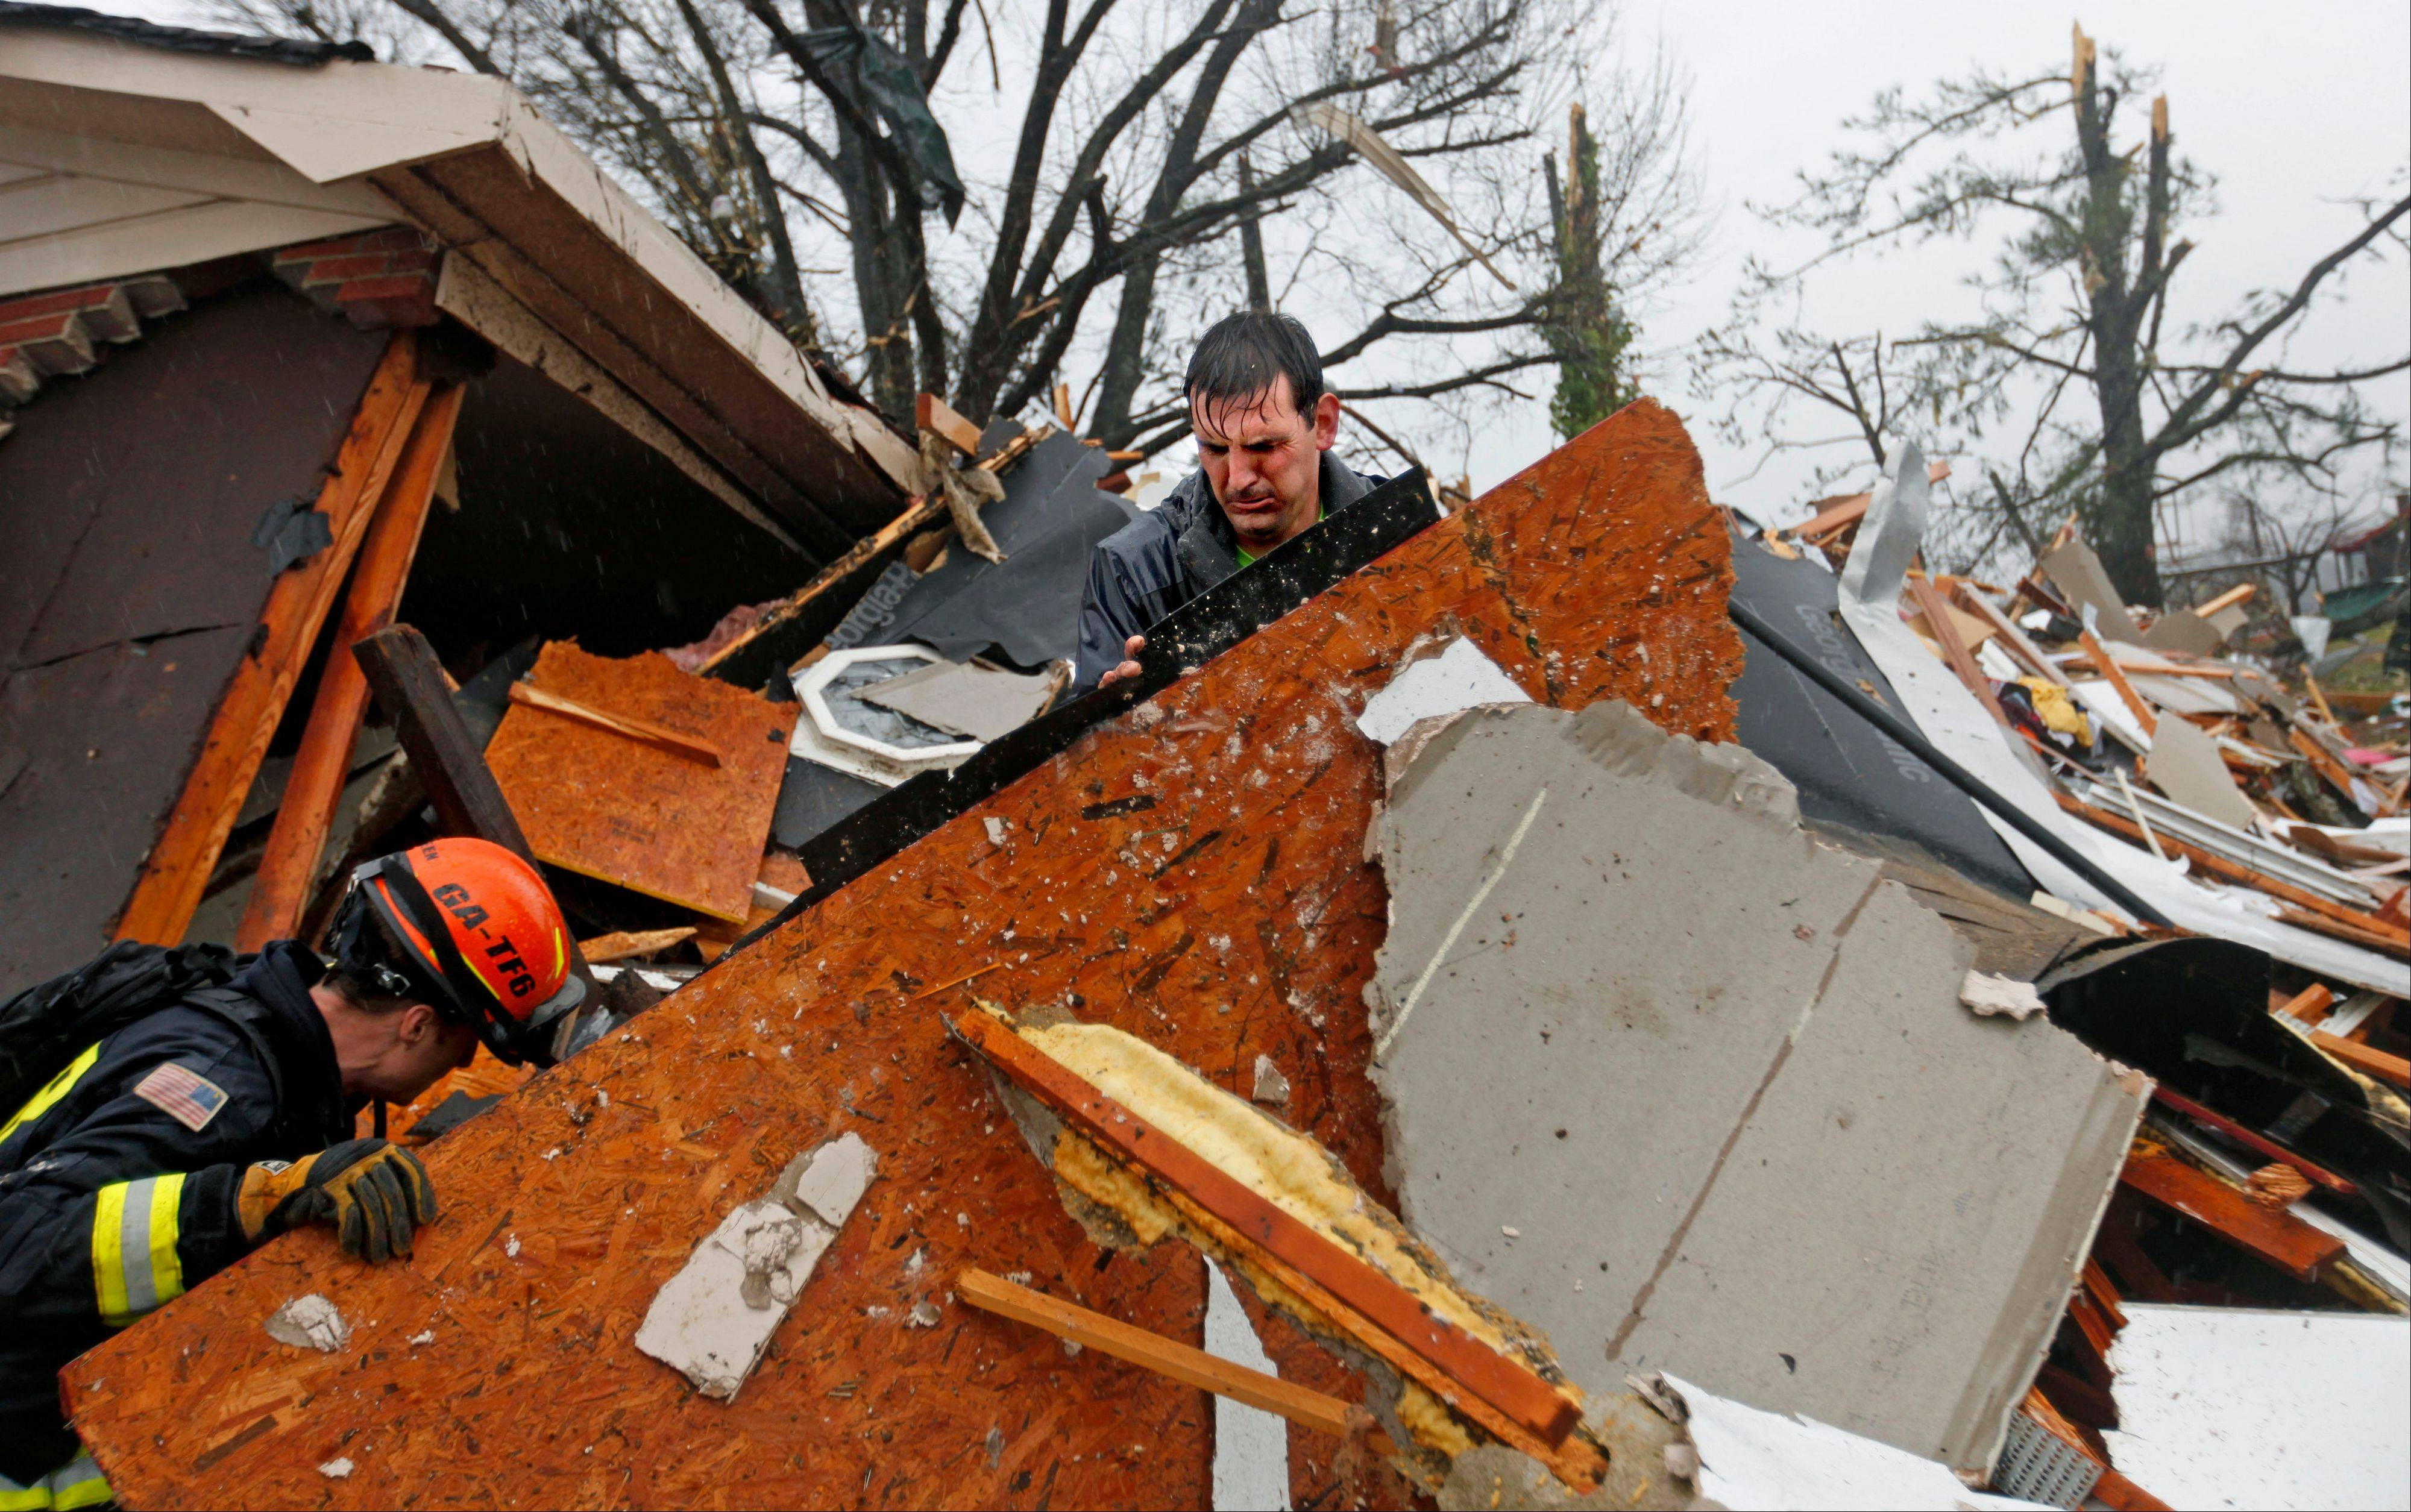 Nathan Varnes, of Cartersville, Ga., right, helps Georgia Search and Rescue firefighter Billy Green, left, search a destroyed home for a dog after a tornado struck, Wednesday, Jan. 30, 2013, in Adairsville, Ga.